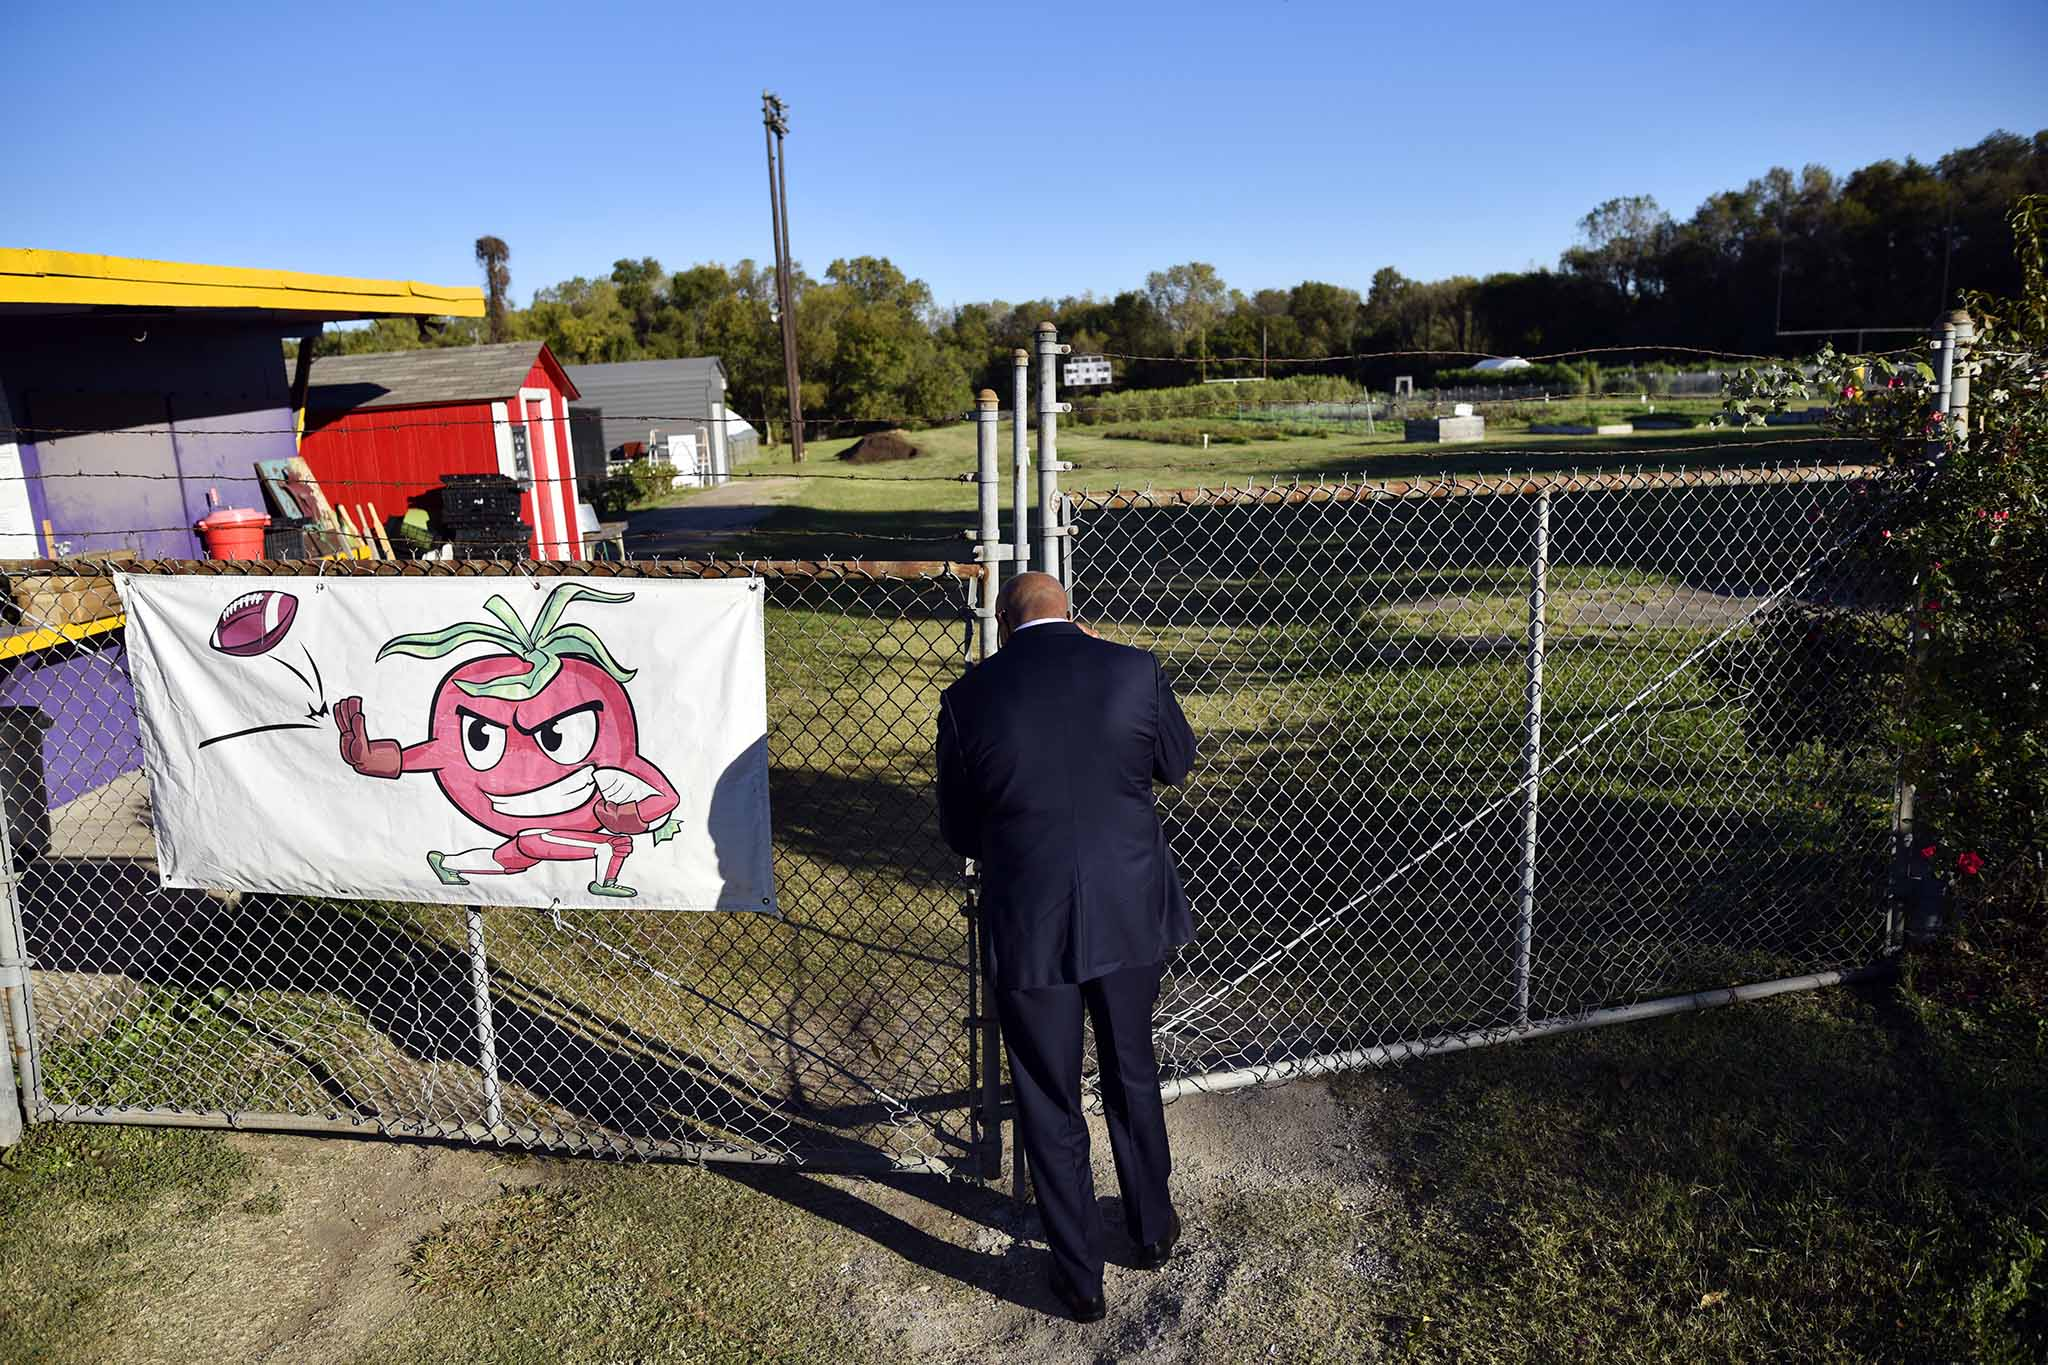 Michael Sorrell, president of Paul Quinn College at entrance to the organic farm on the campus of Paul Quinn College in Dallas, Texas, Tuesday morning, Oct. 24, 2017. The farm used to be the school´s football field until he ended the costly program.